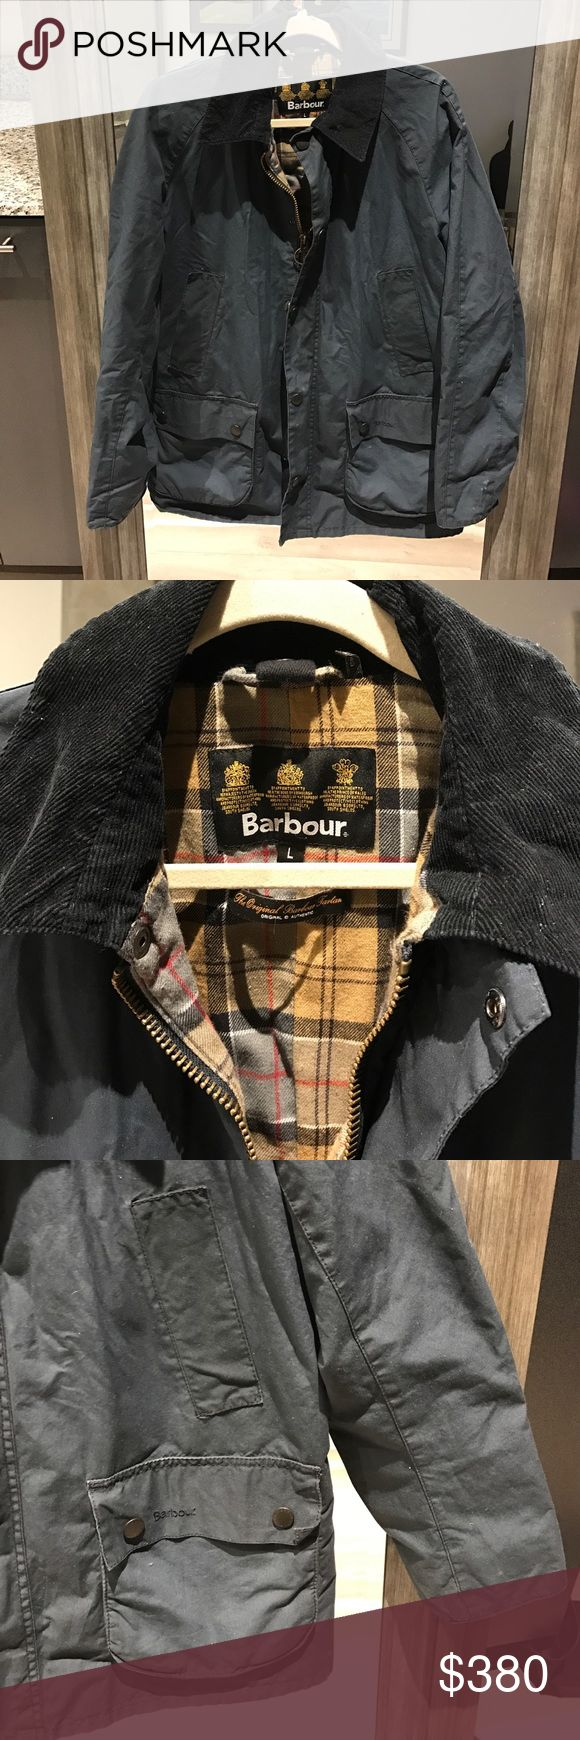 MEN'S BARBOUR CLASSIC BEDALE WAX JACKET COAT MEN'S BARBOUR CLASSIC BEDALE WAX JACKET COAT. Sold at Orvis, Bloomingdale's. See photo for description. Size Large (L). Navy Blue color. Gently used but in GREAT condition. BUY NOW OR MAKE AN OFFER !!! Barbour Jackets & Coats